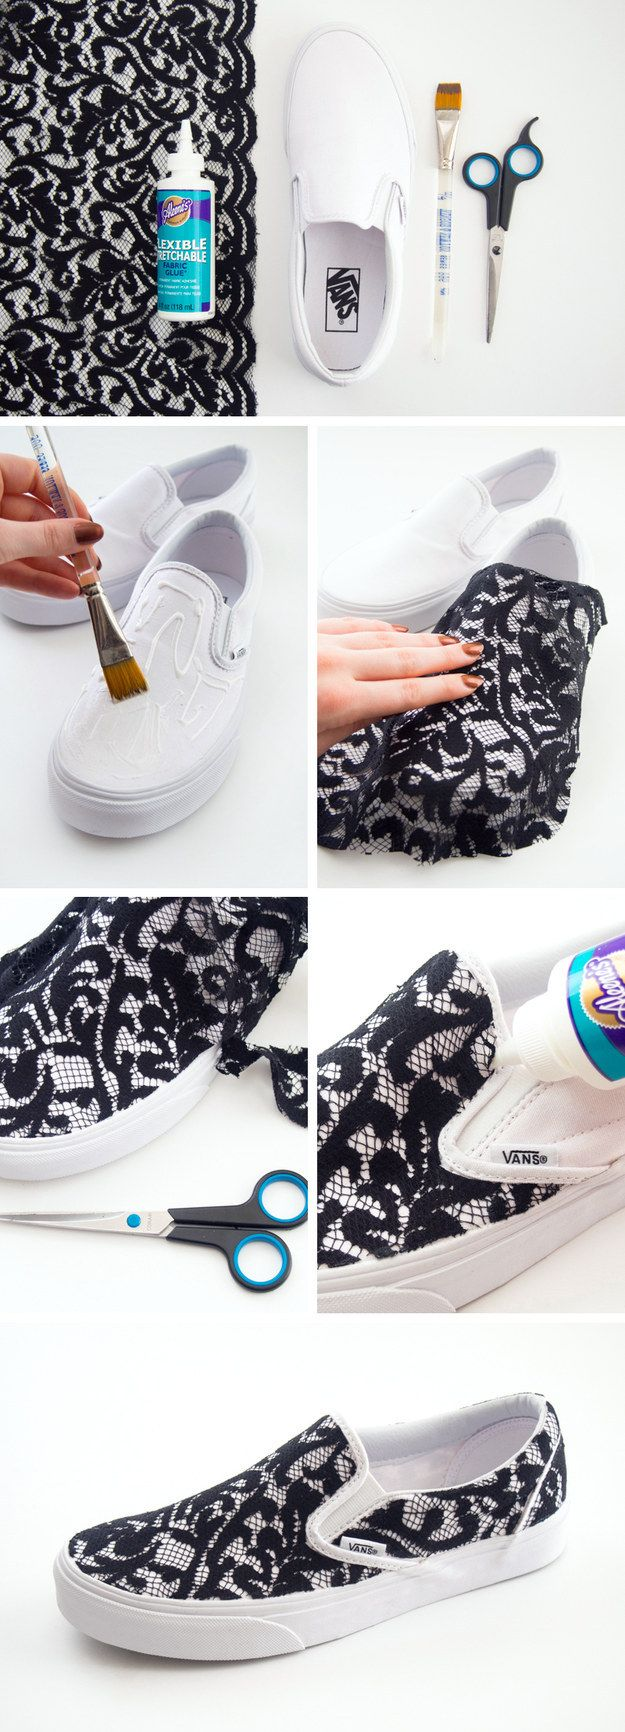 Apply black lace to a pair of slip-ons for a cute upgrade. | 21 Super Stylish Sneaker Hacks You'll Want To Try ASAP